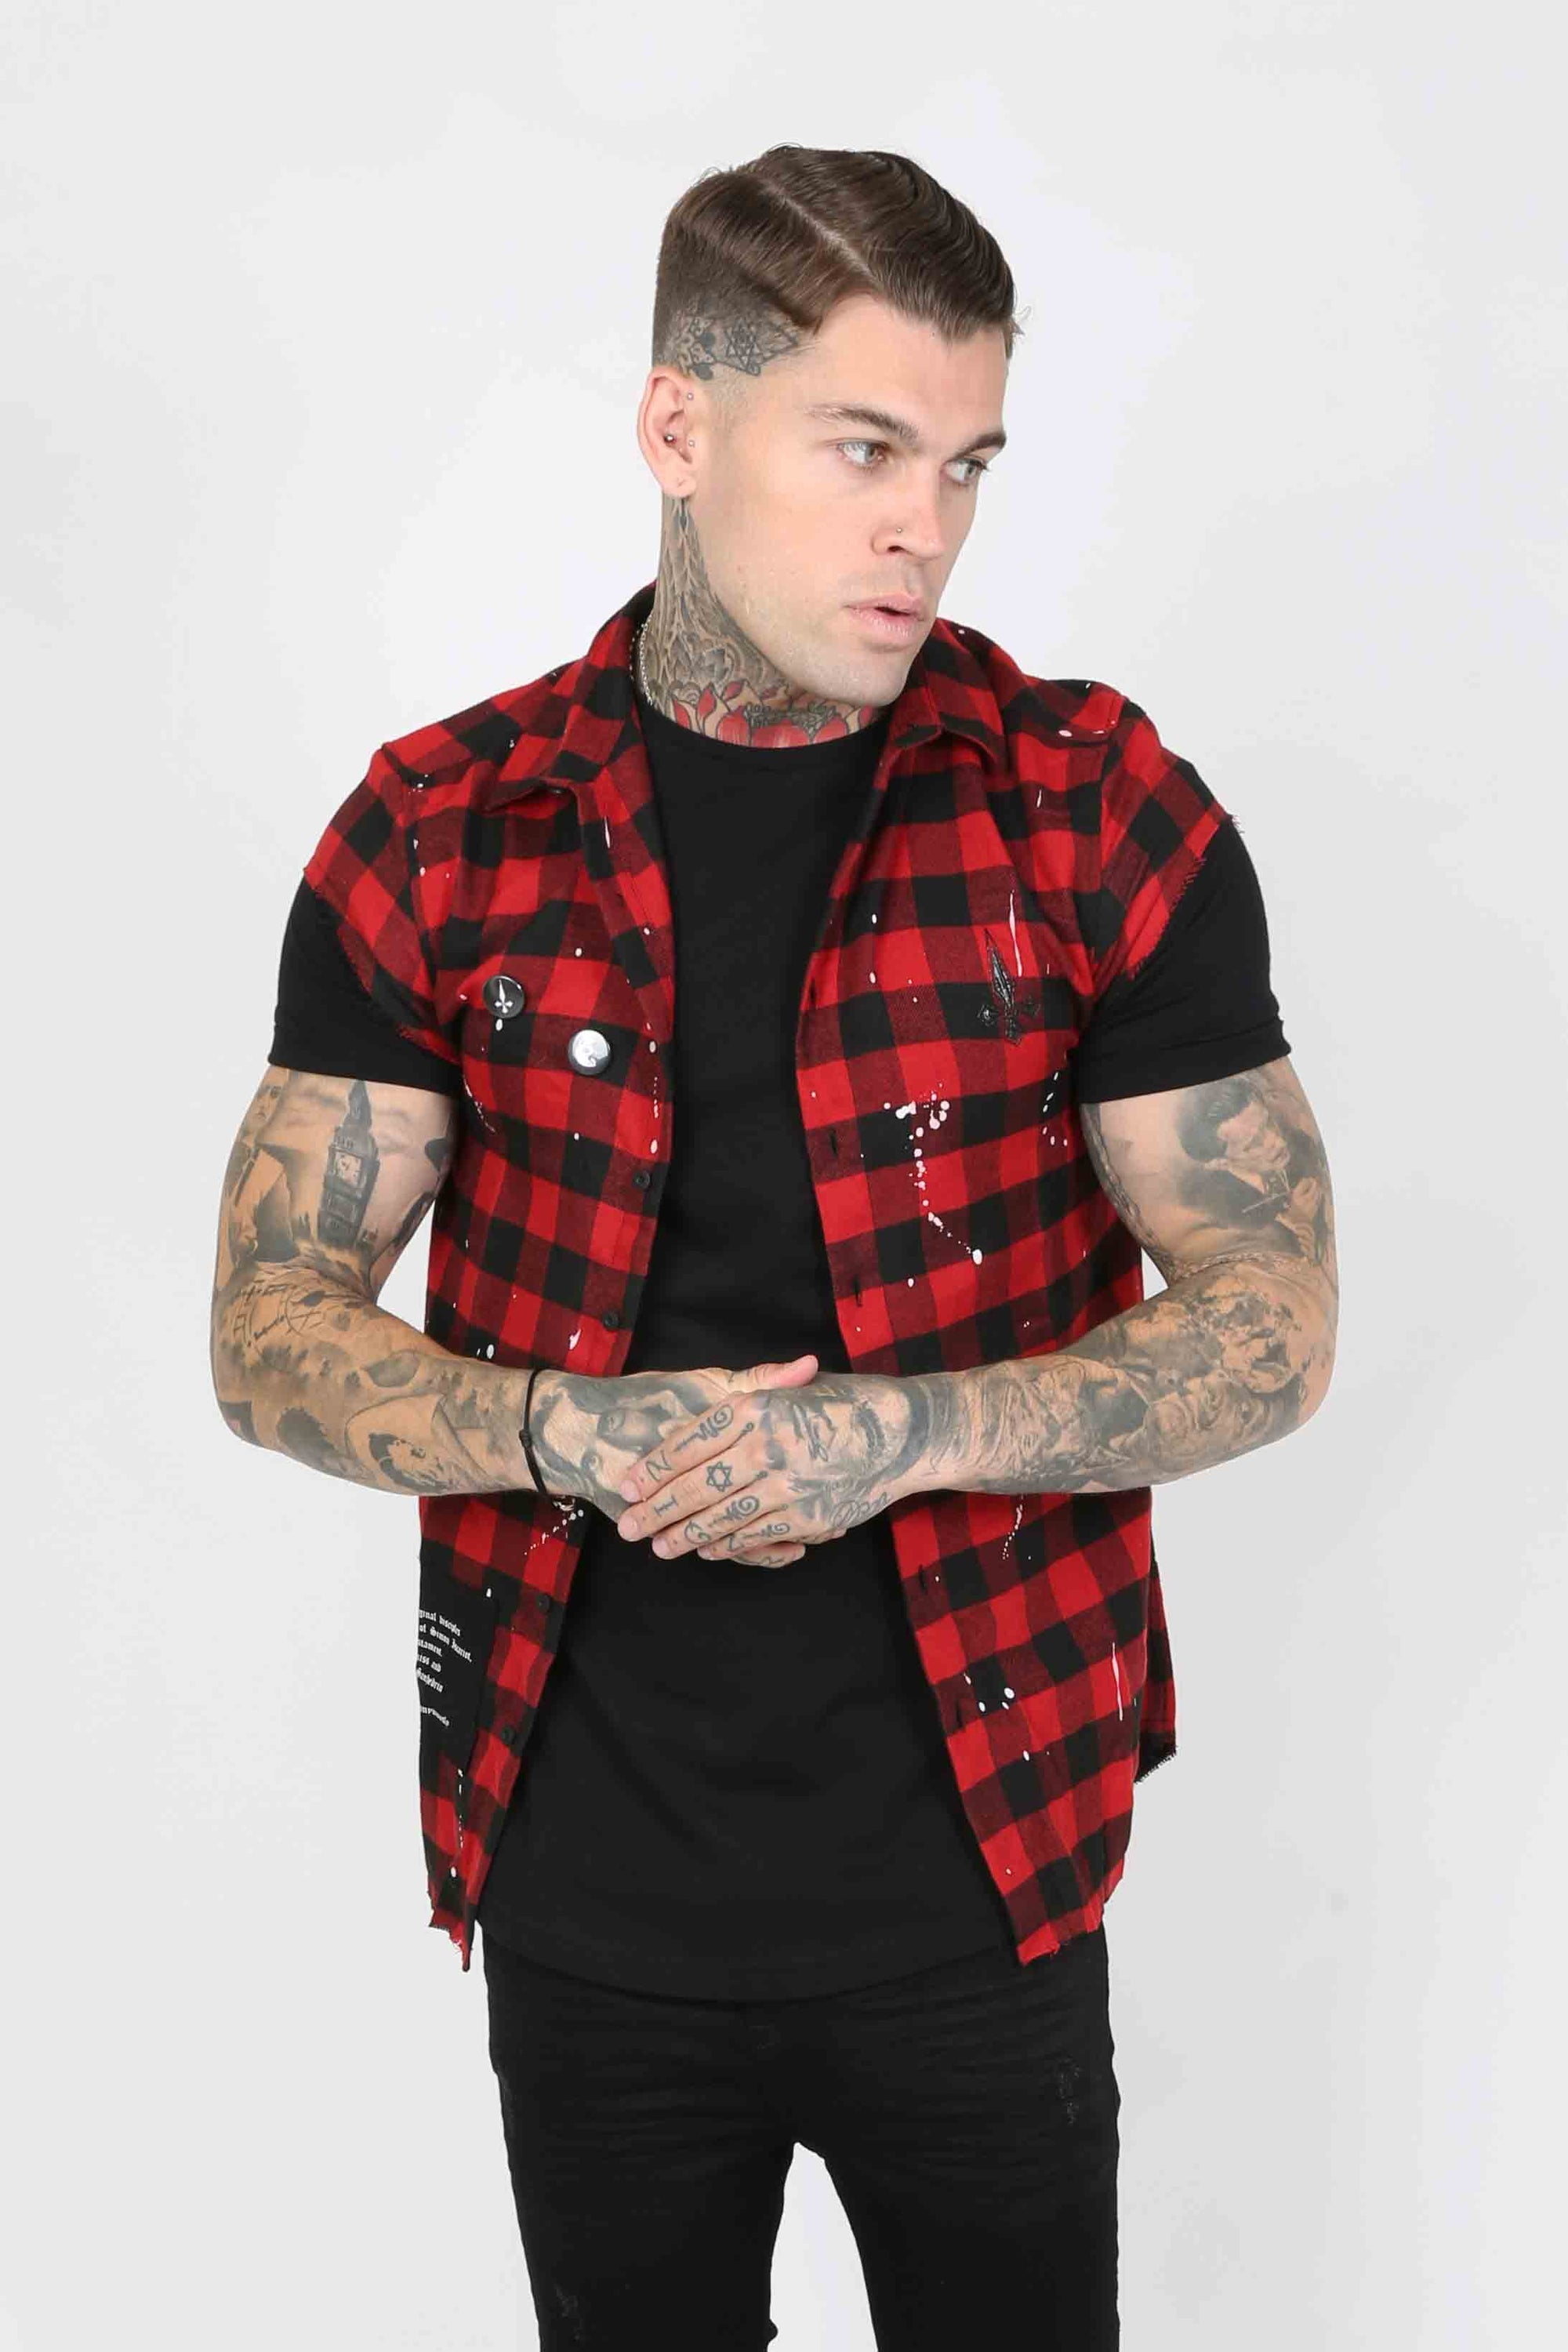 Judas Sinned Punked Plaid Men's Overshirt - Red - Judas Sinned Clothing